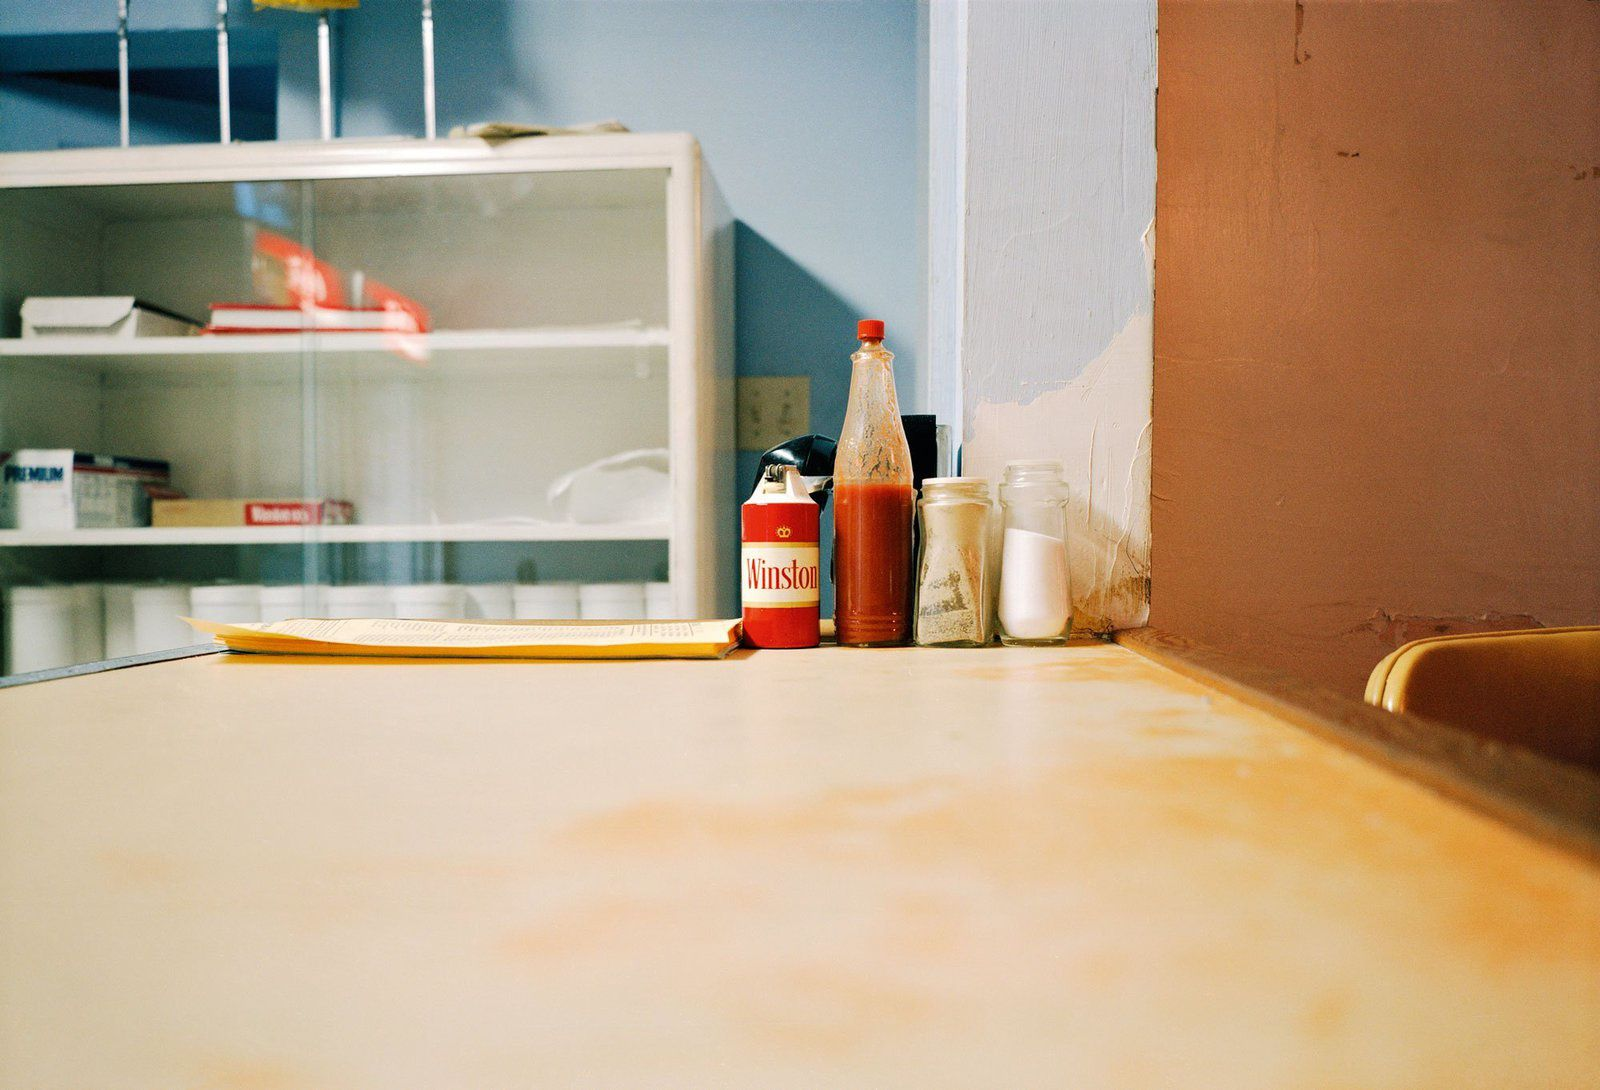 Photo by William Eggleston - Via: vogue.com